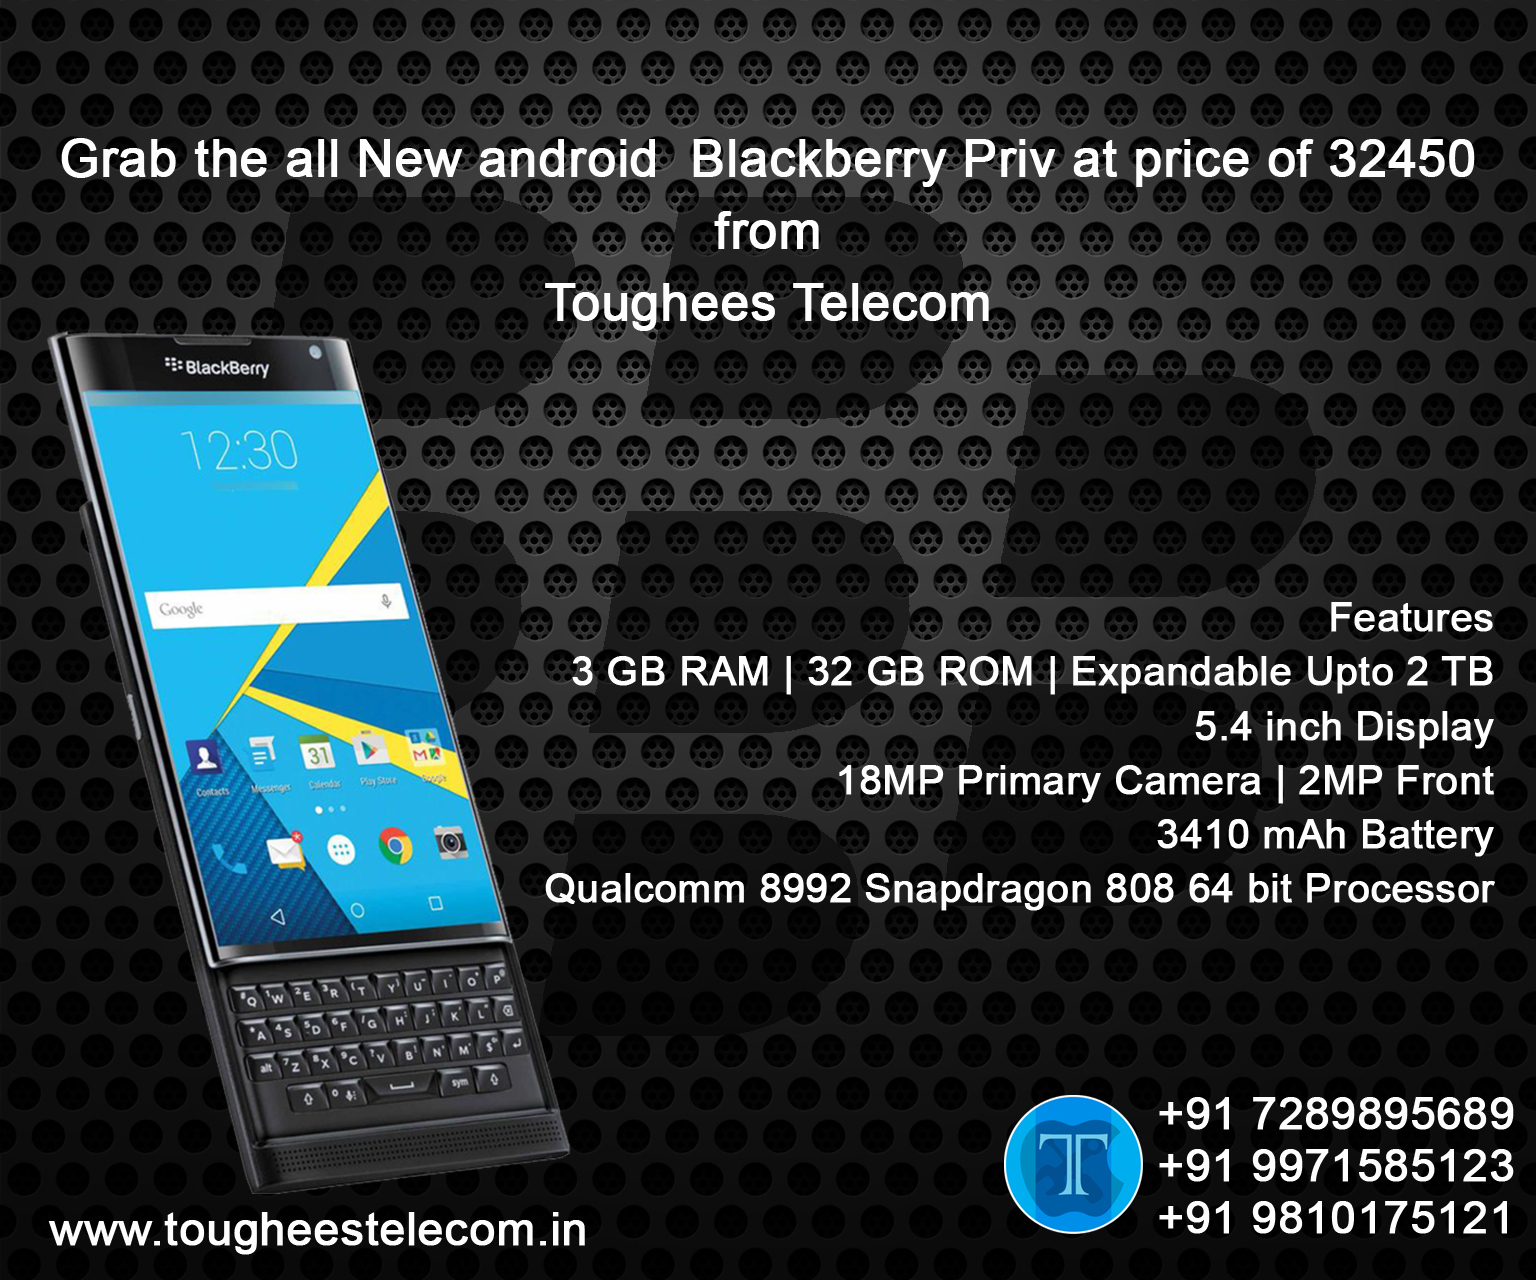 Grab the all new Android Blackberry Priv at pri